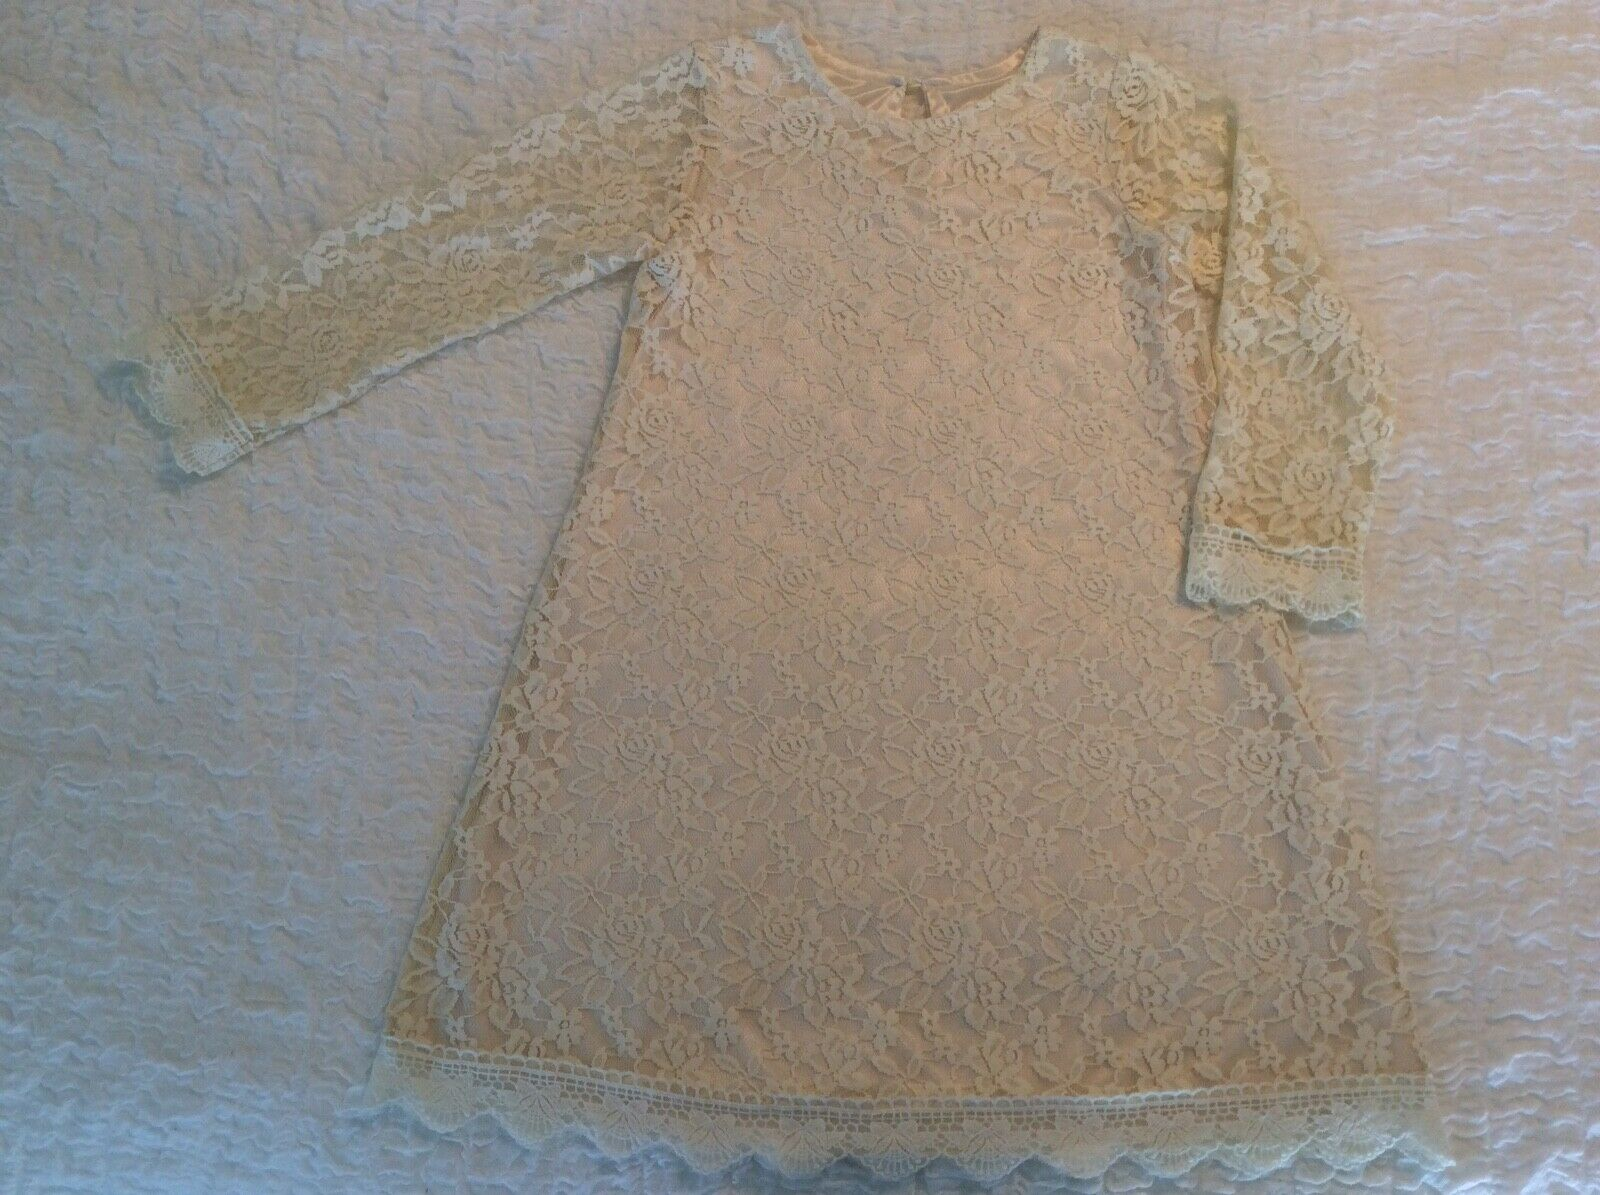 Bow Dream Lace Girls Sz 8 Formal Dress with Illusion Sleeves SHIPS FREE